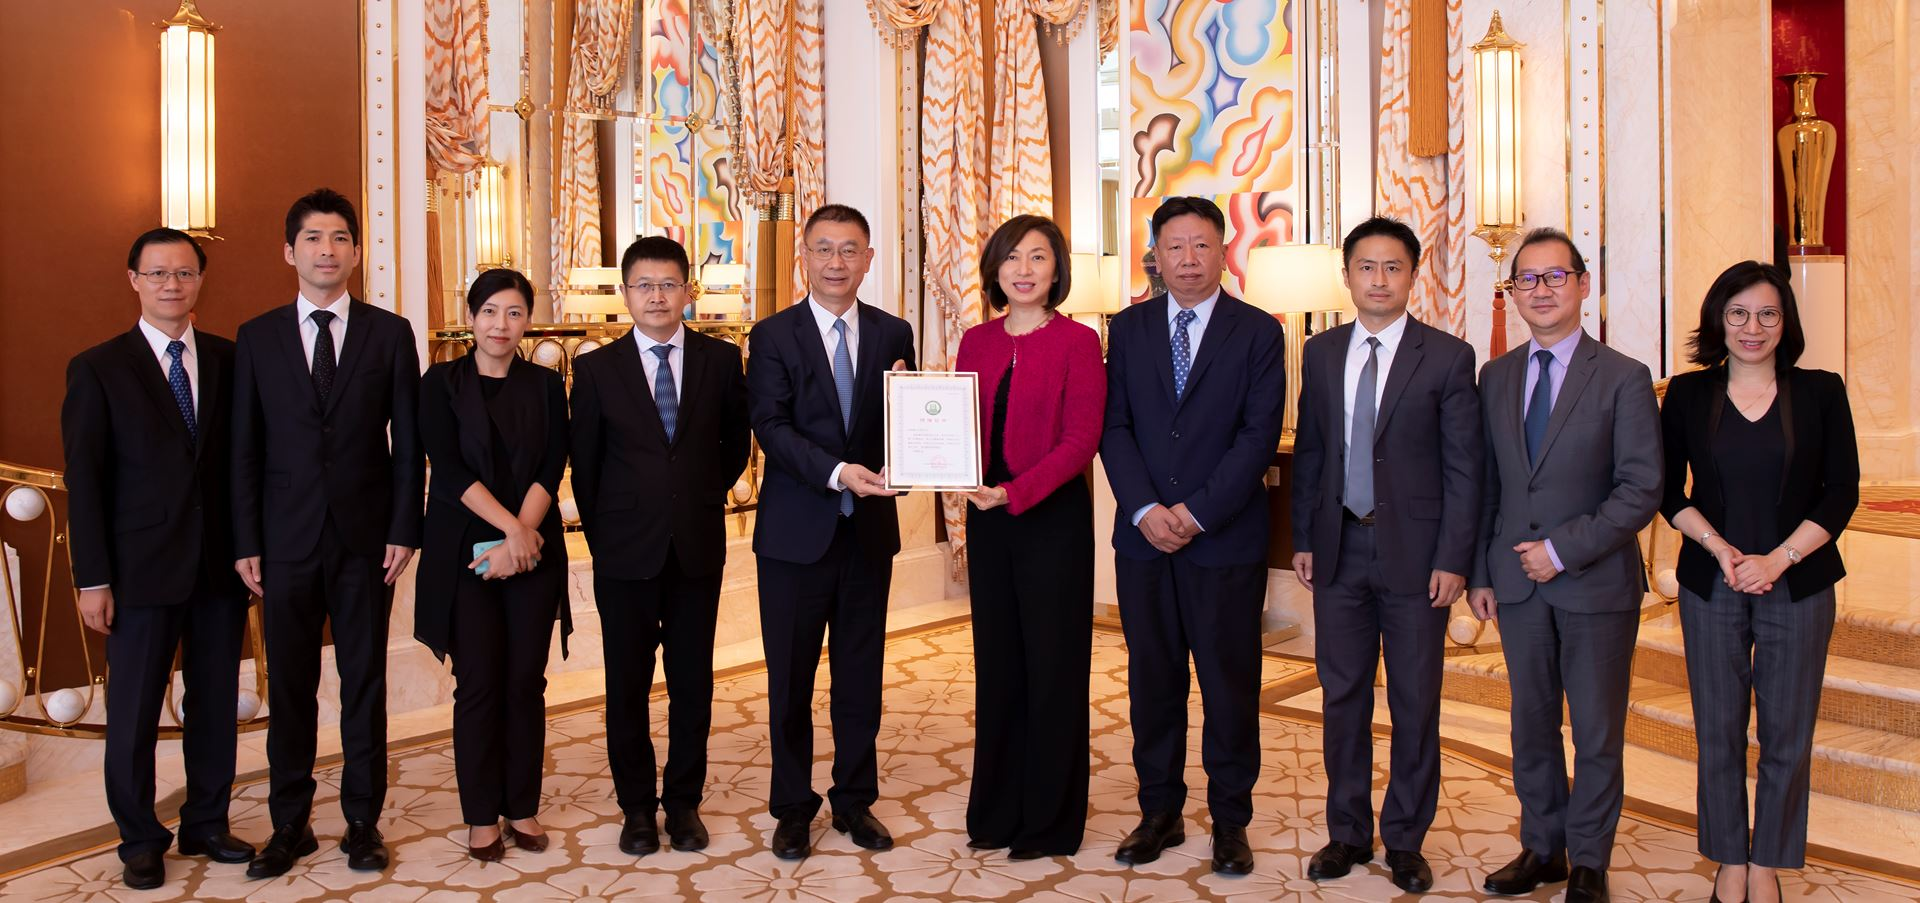 Liaison Office recognizes Wynn for its contributions during